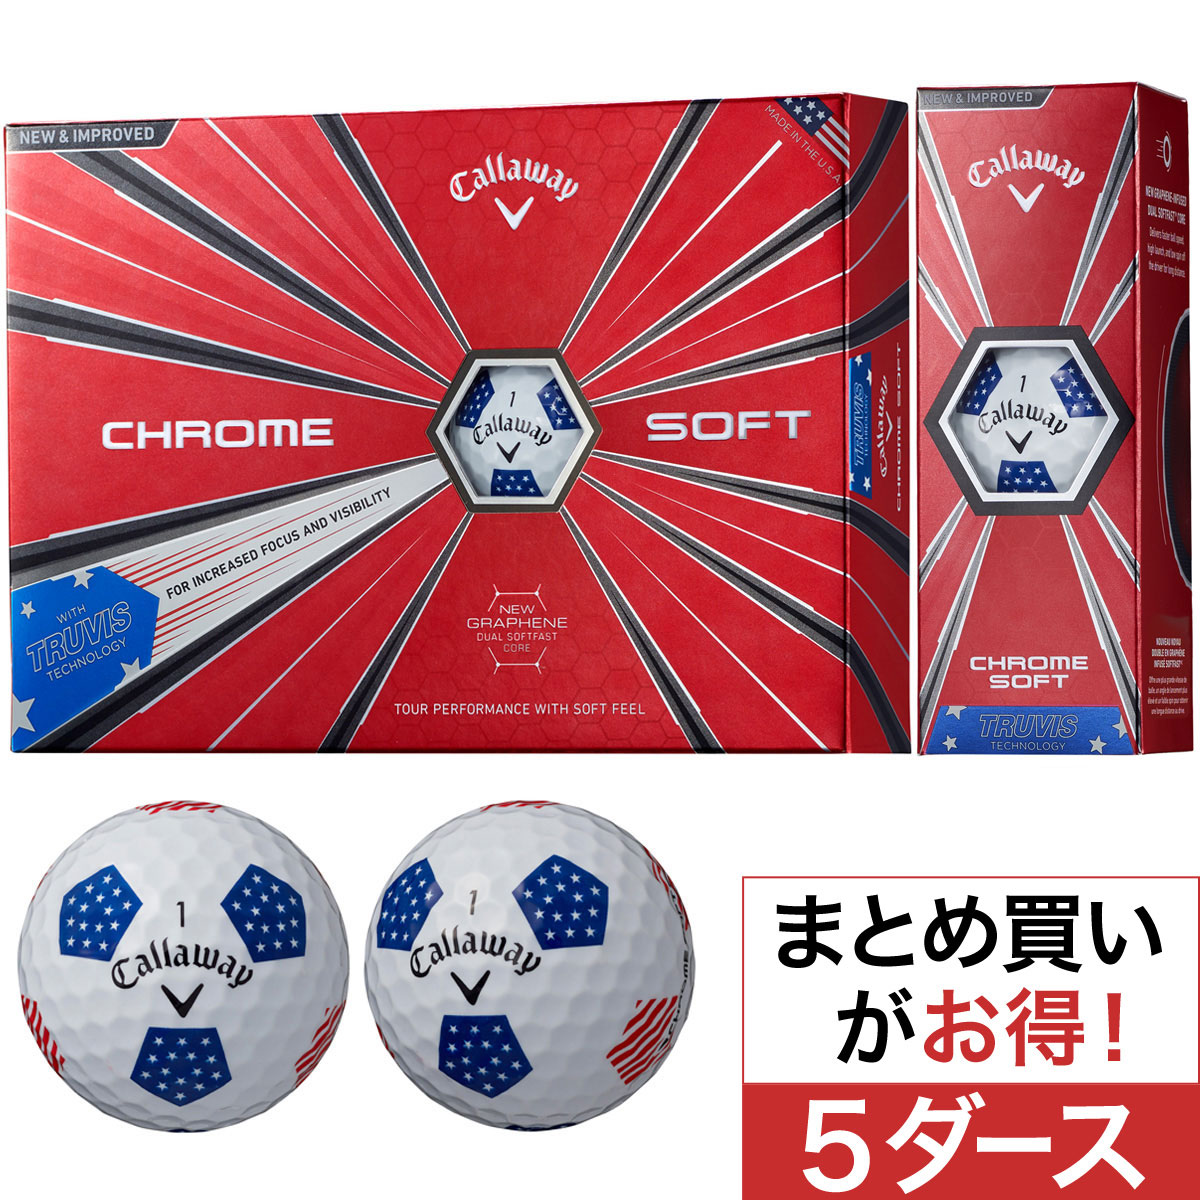 CHROME SOFT 18 TRUVIS ボール 5ダースセット